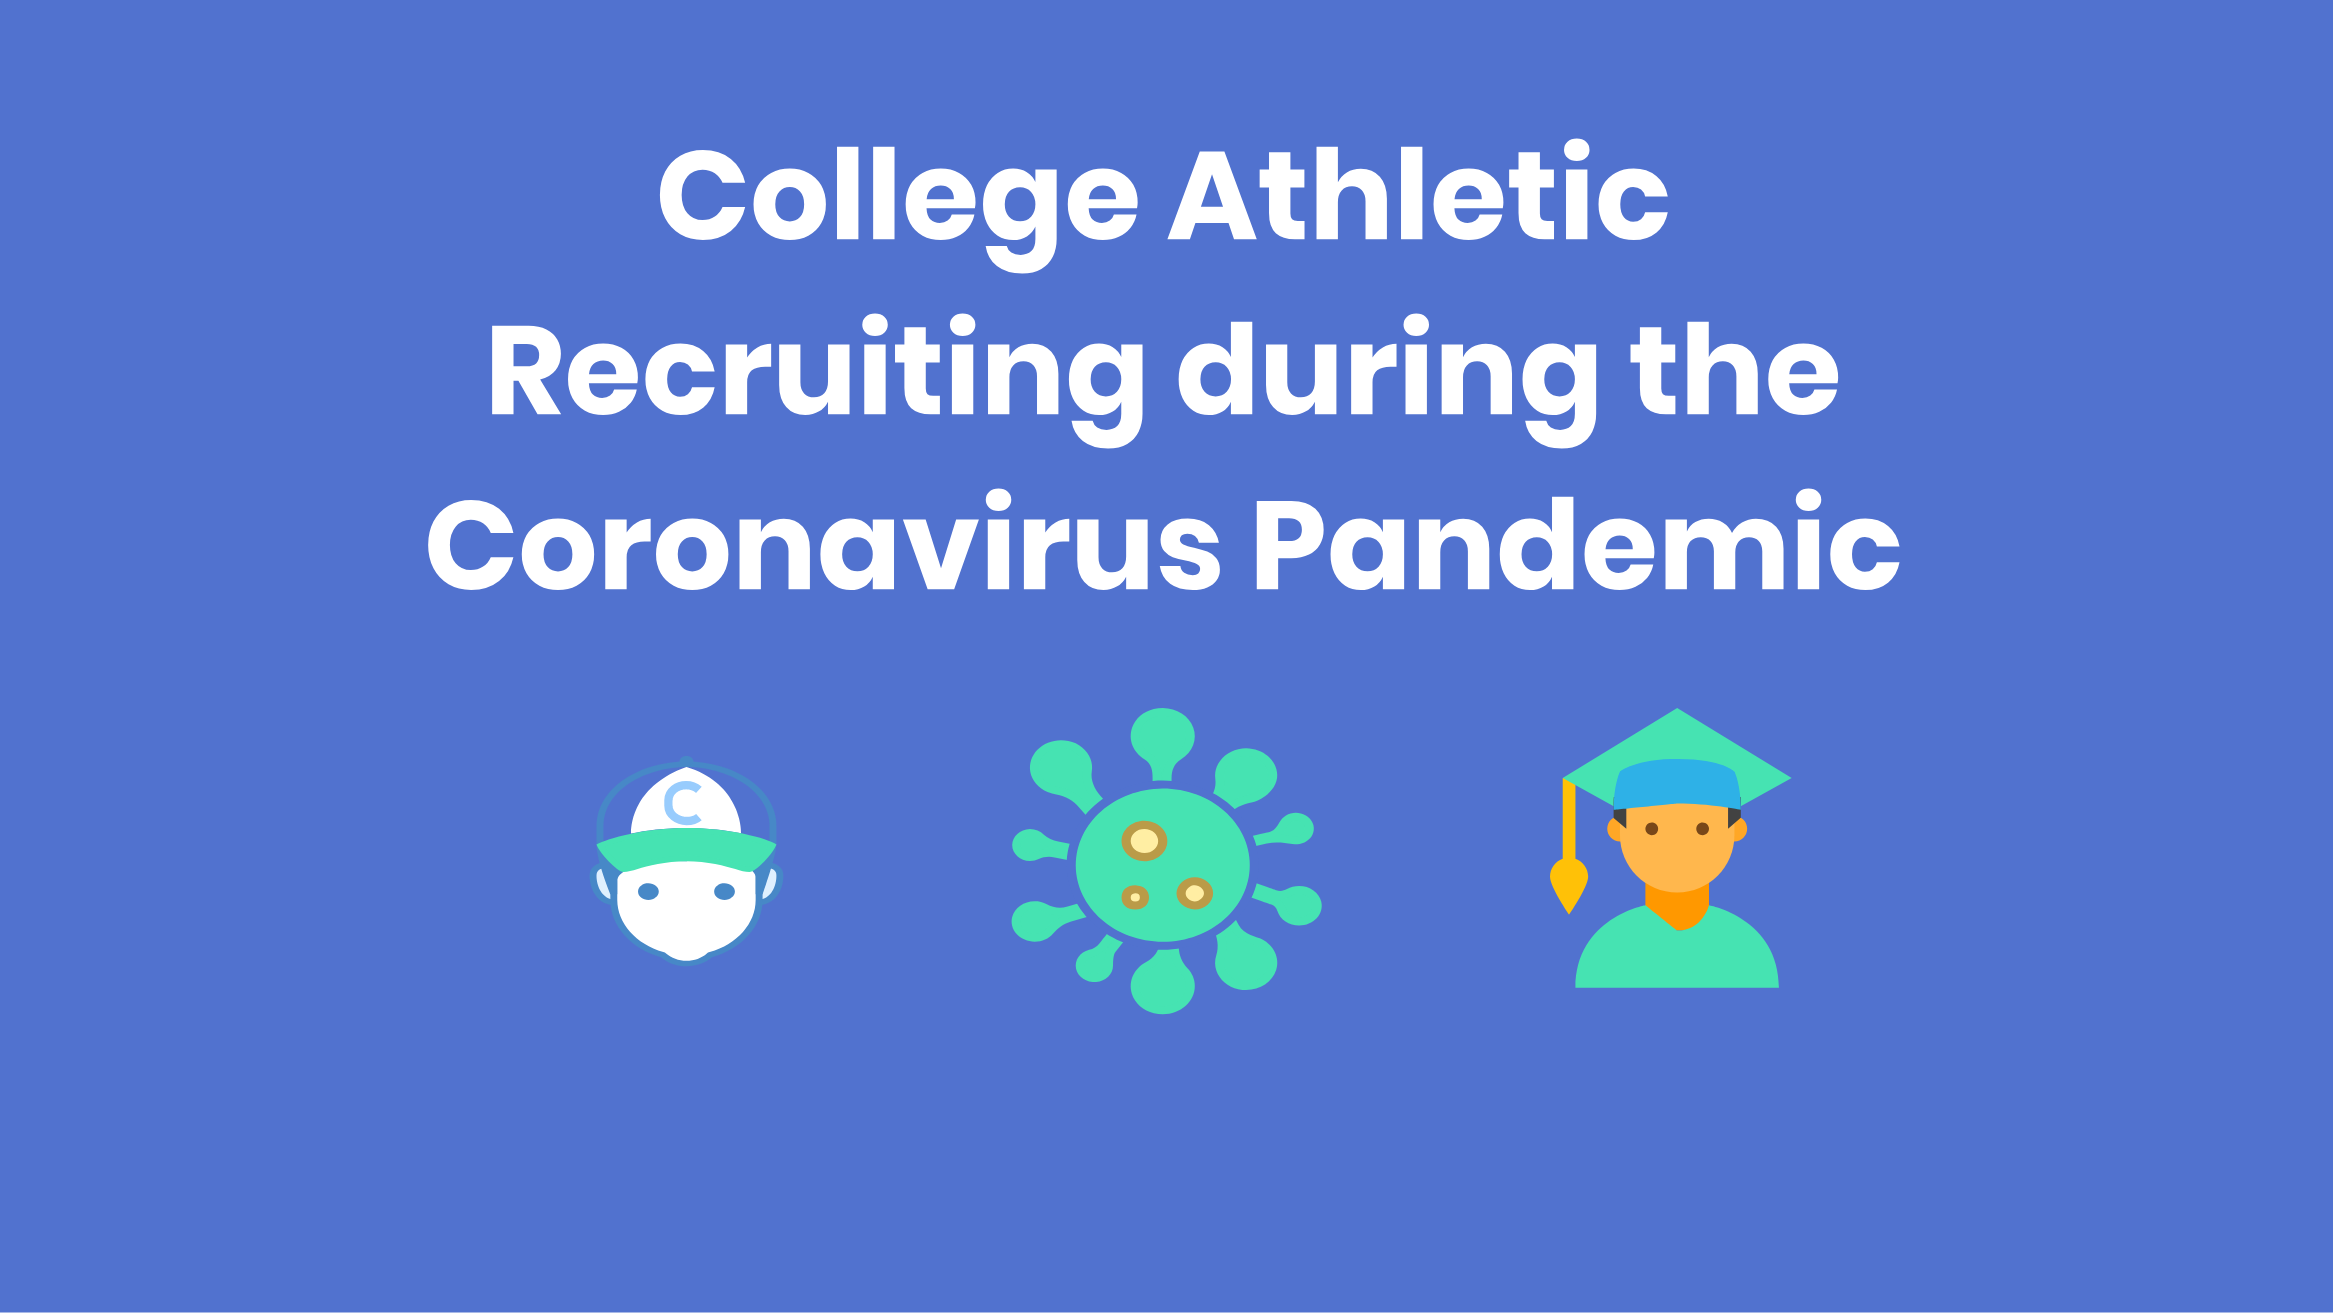 Image for College Athletic Recruiting during the Coronavirus Pandemic